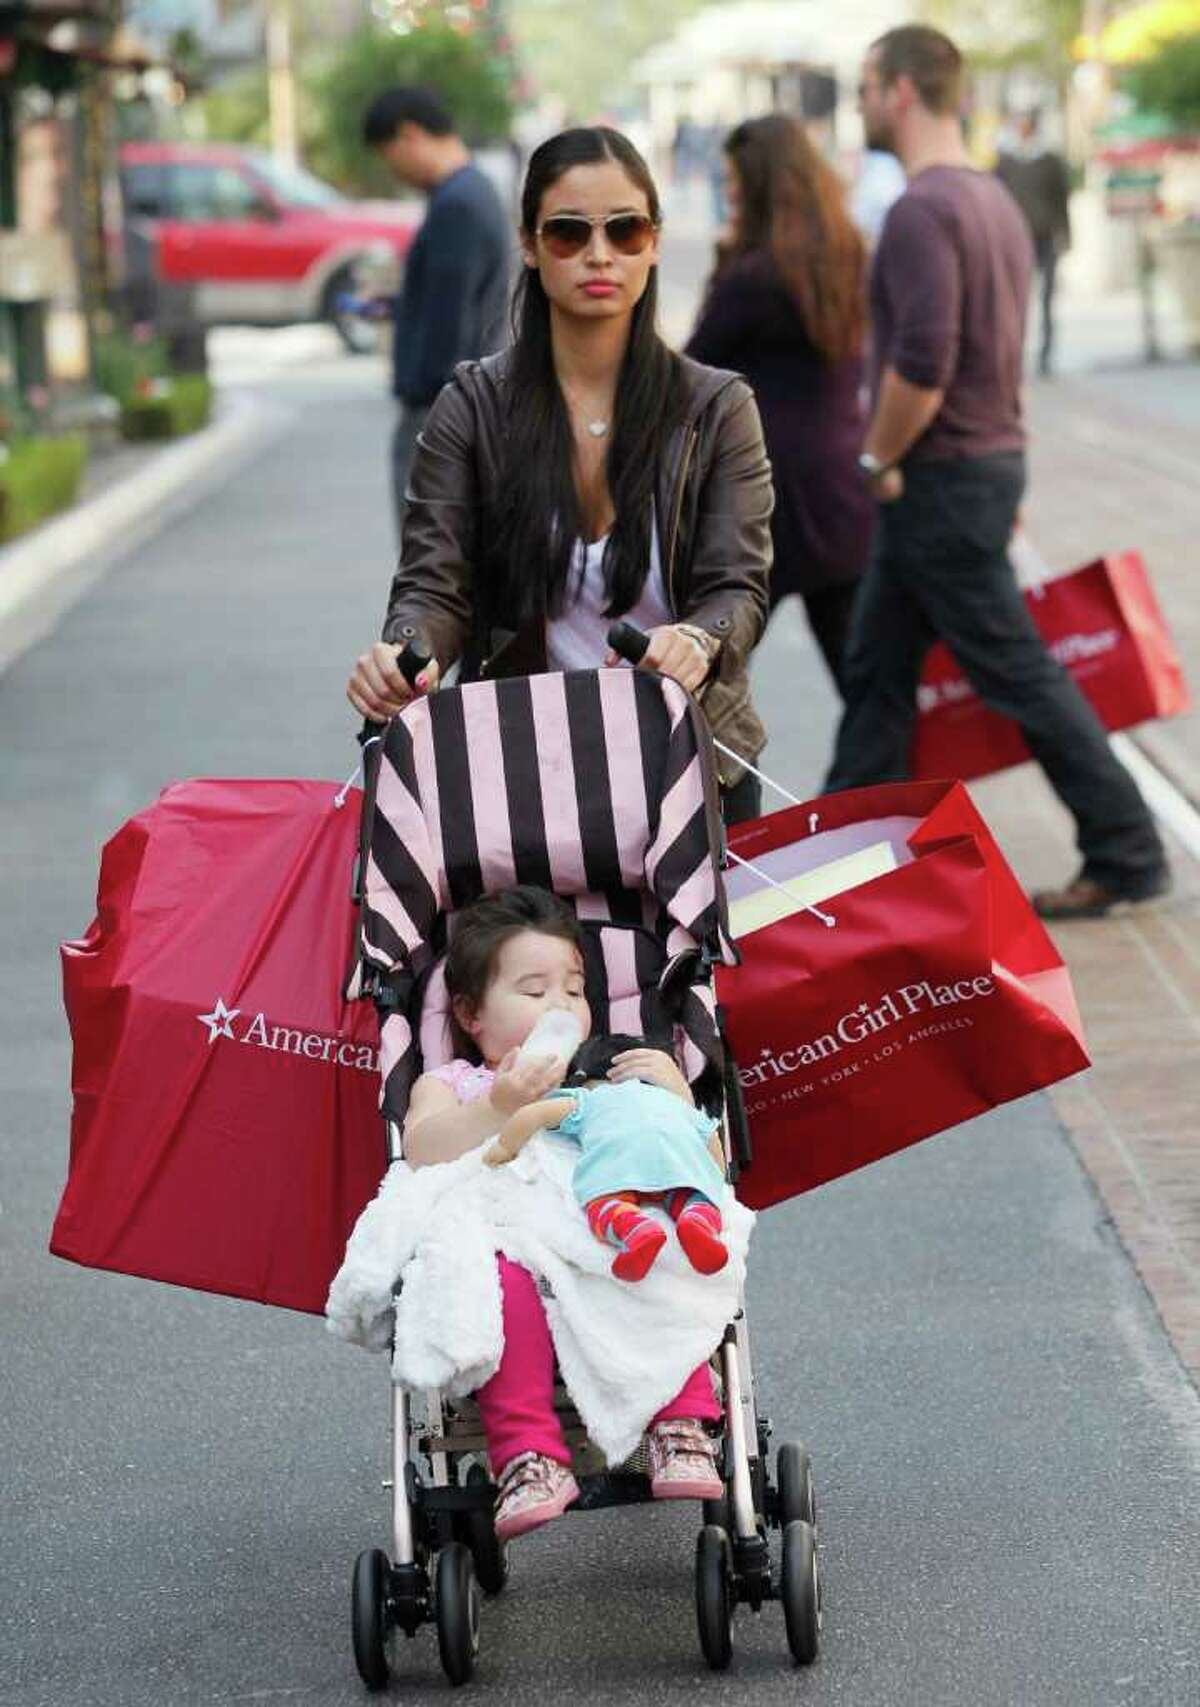 Shopper Monica Eaves, with her daughter, Sophia, 2, shops for holiday gifts at The Grove outdoor mall in Los Angeles on Tuesday, Dec. 14, 2010. A strong start to the holiday season is raising confidence that the consumer is back and that 2011 could be a better year for the economy than expected.